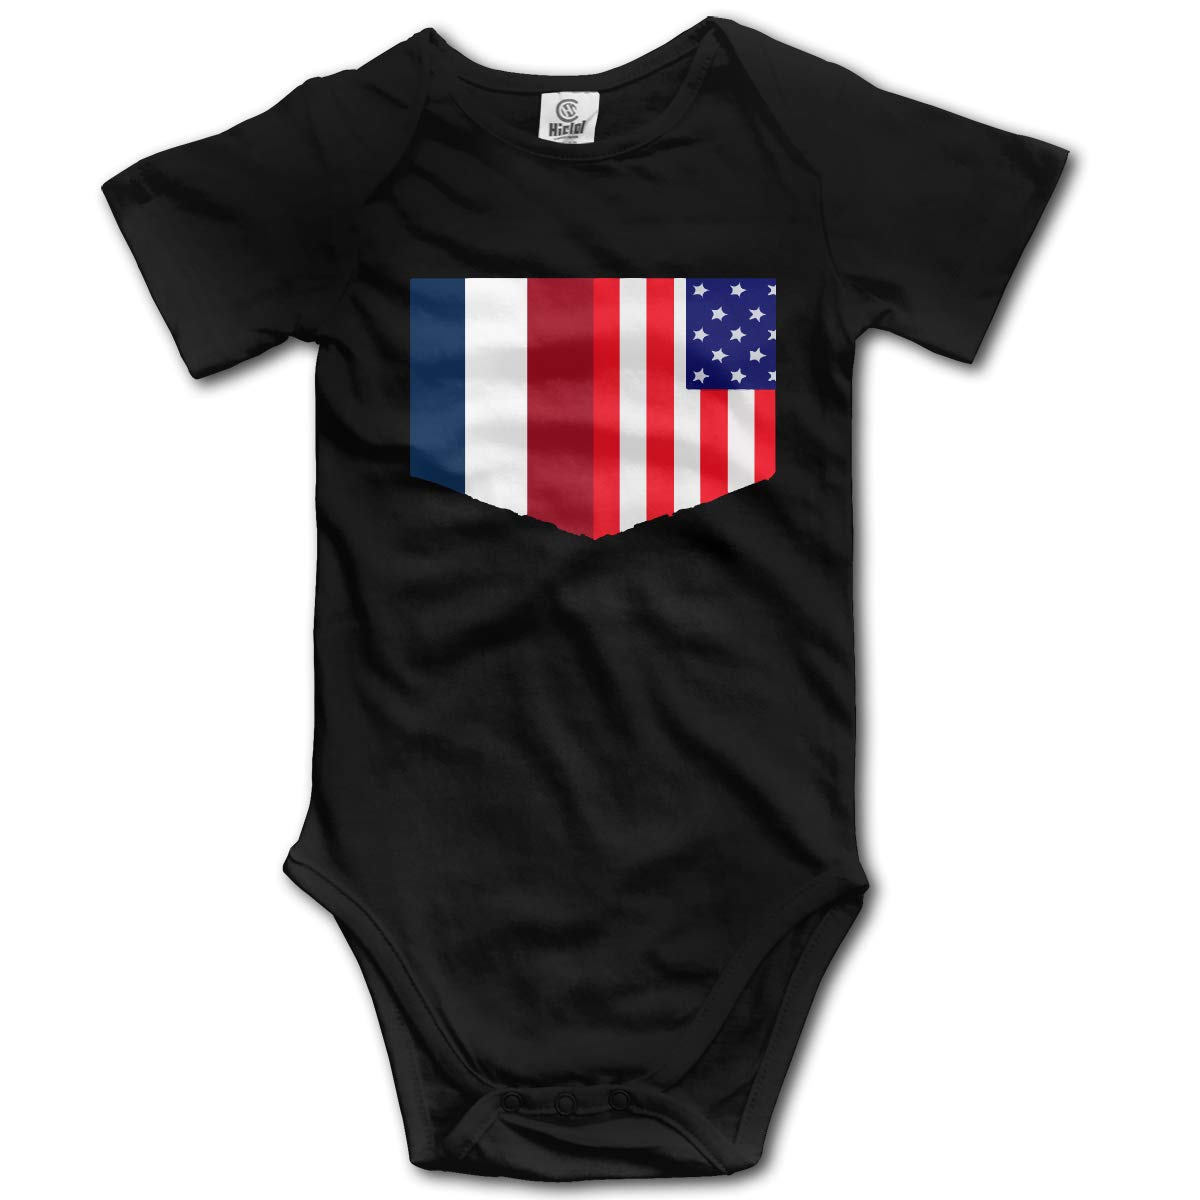 J122 Baby Boys Dutch American Short Sleeve Climbing Clothes Creeper Jumpsuits Suit 6-24 Months